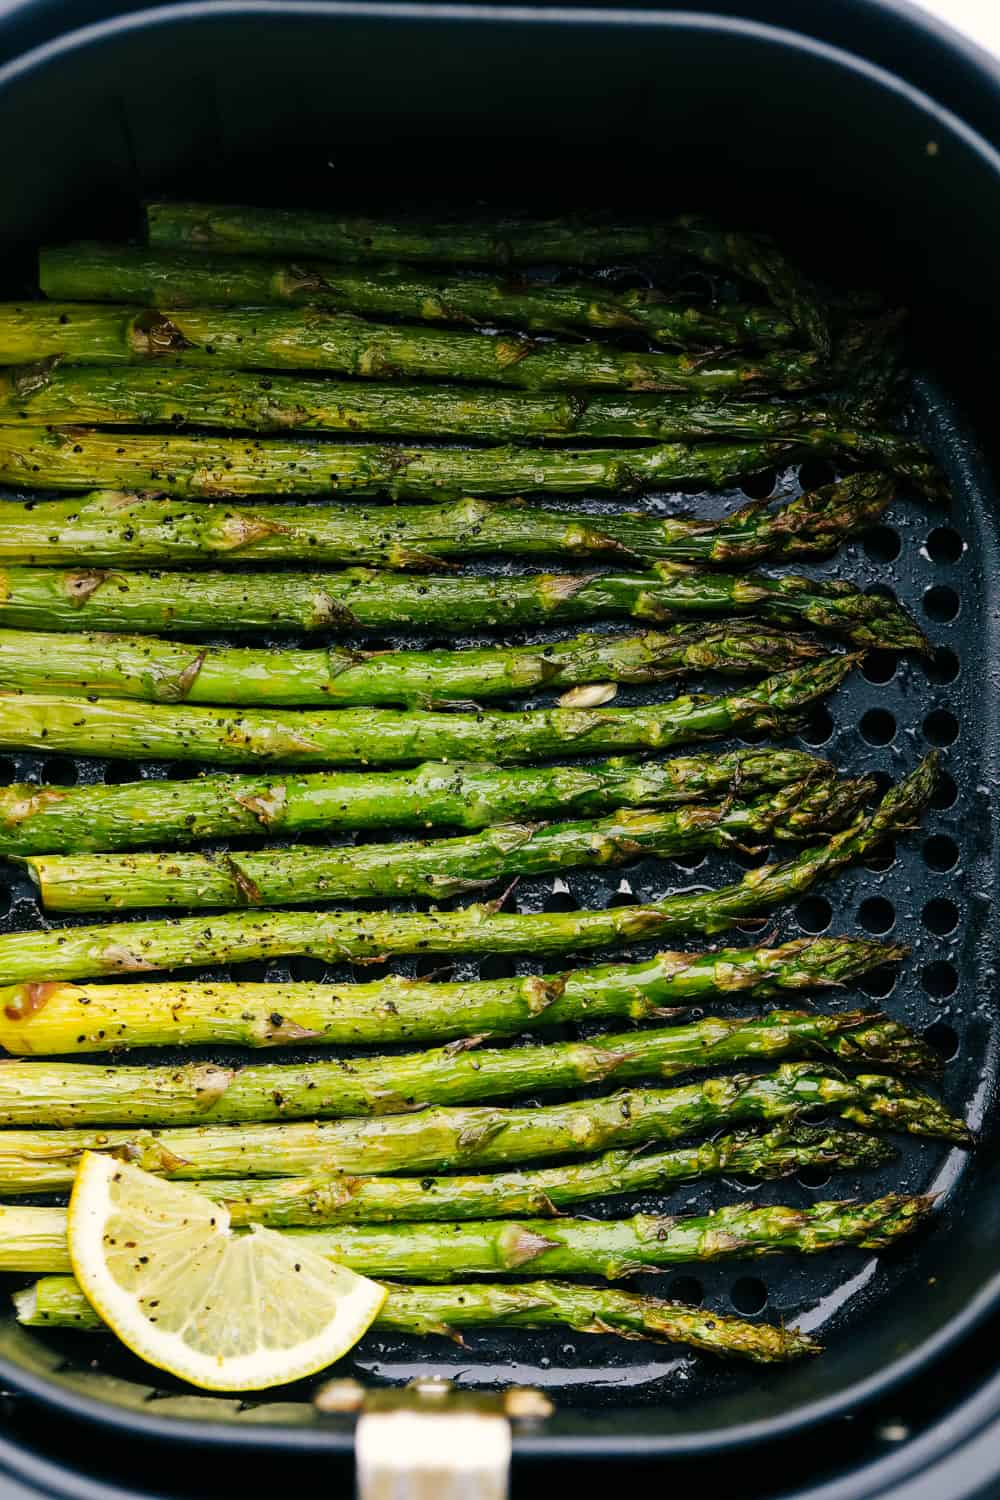 Air fryer roasted asparagus in an air fryer basket with lemon.